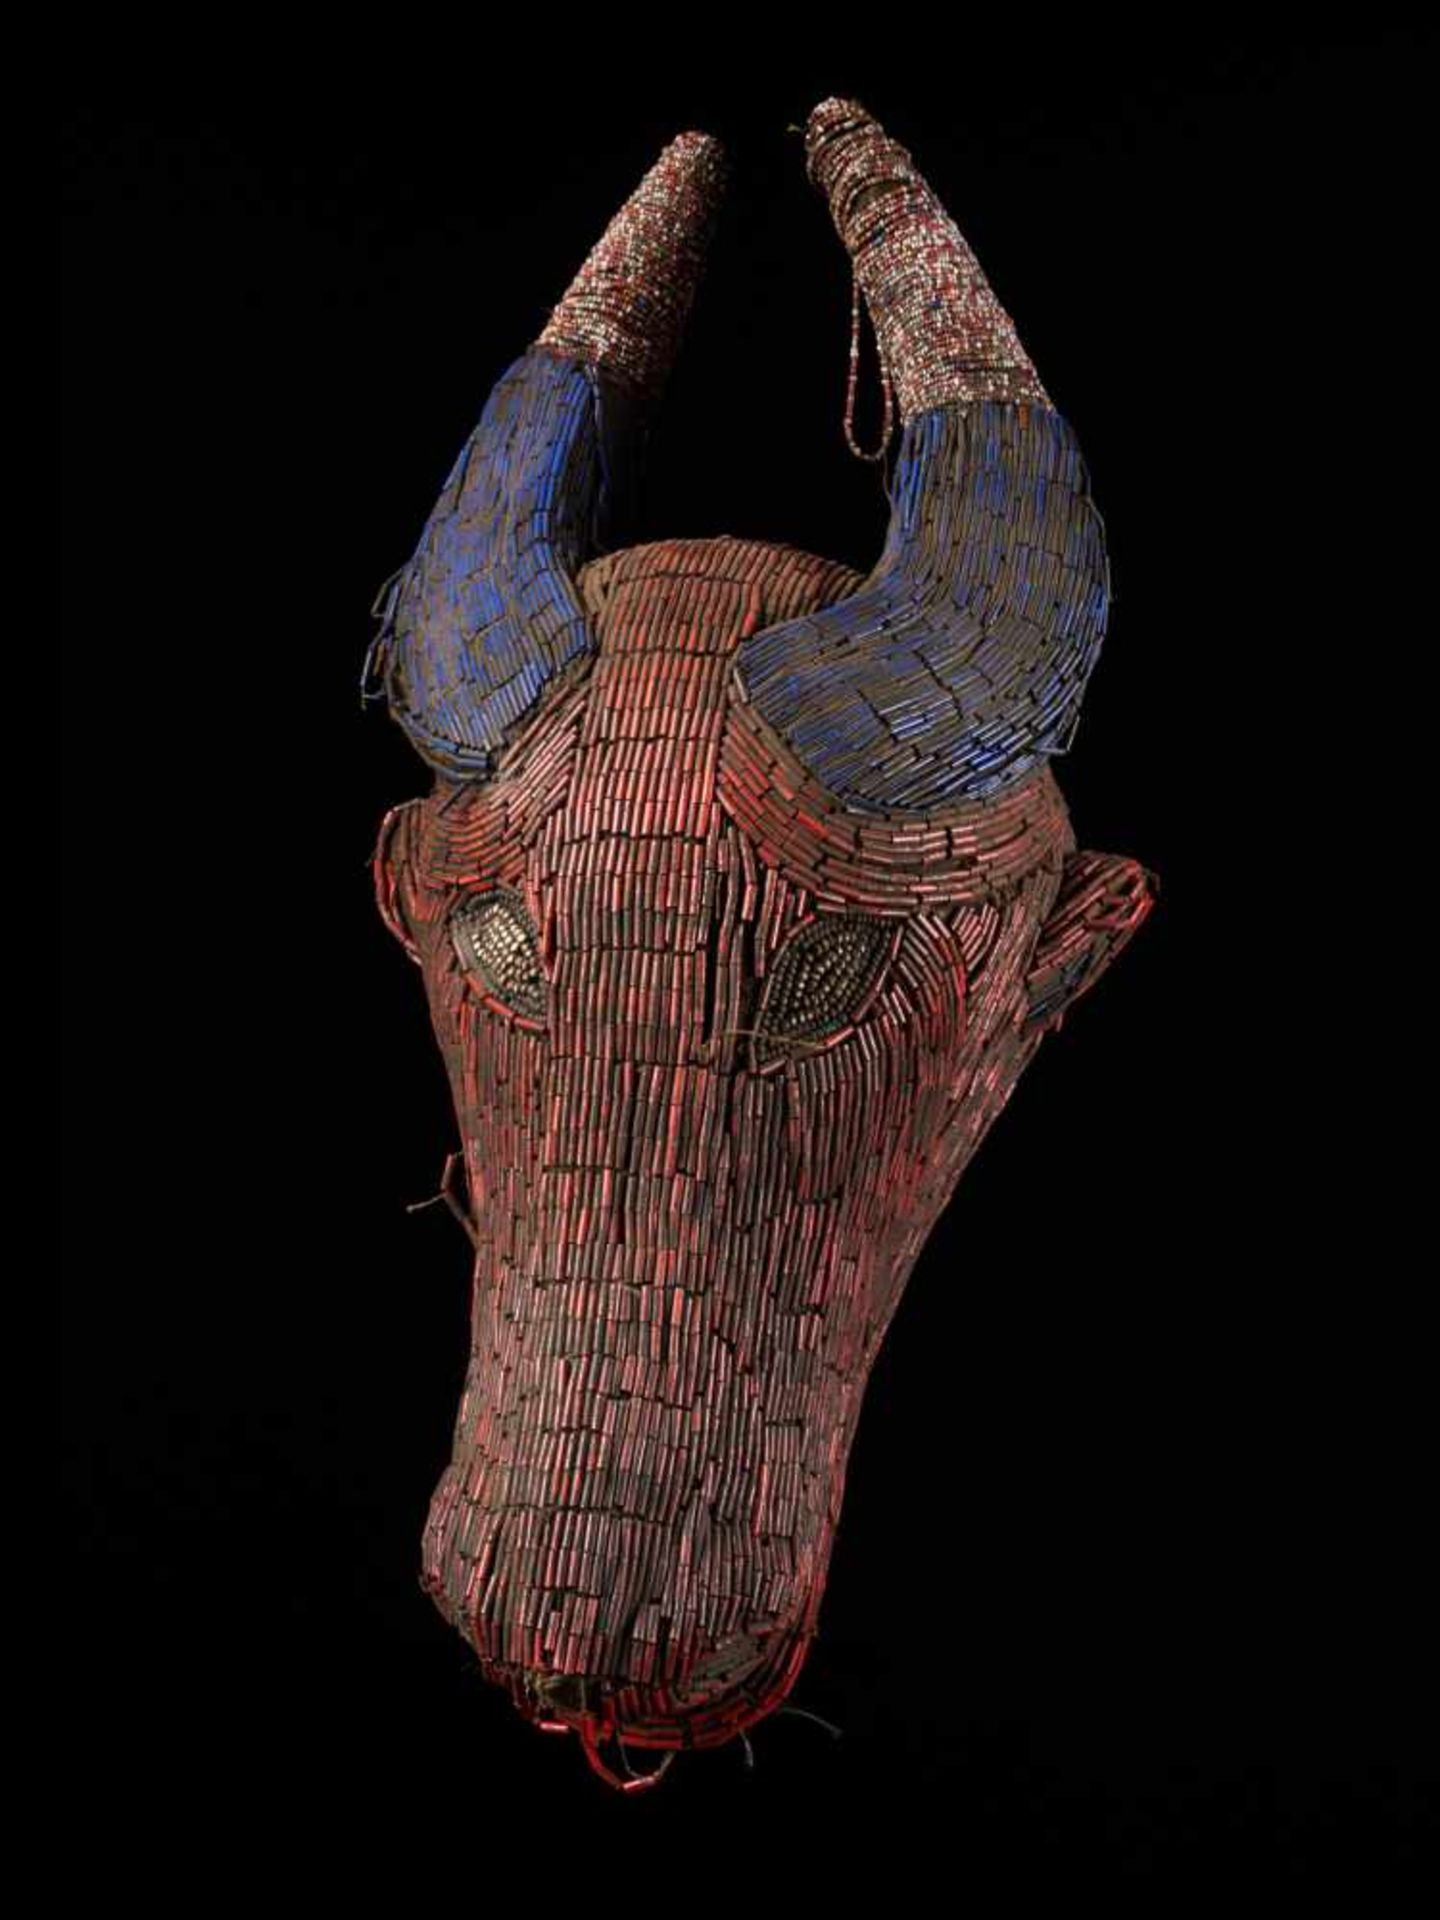 Beaded Red And Blue Buffalo Mask - Tribal ArtA gorgeous red buffalo mask. The wooden mask is beset